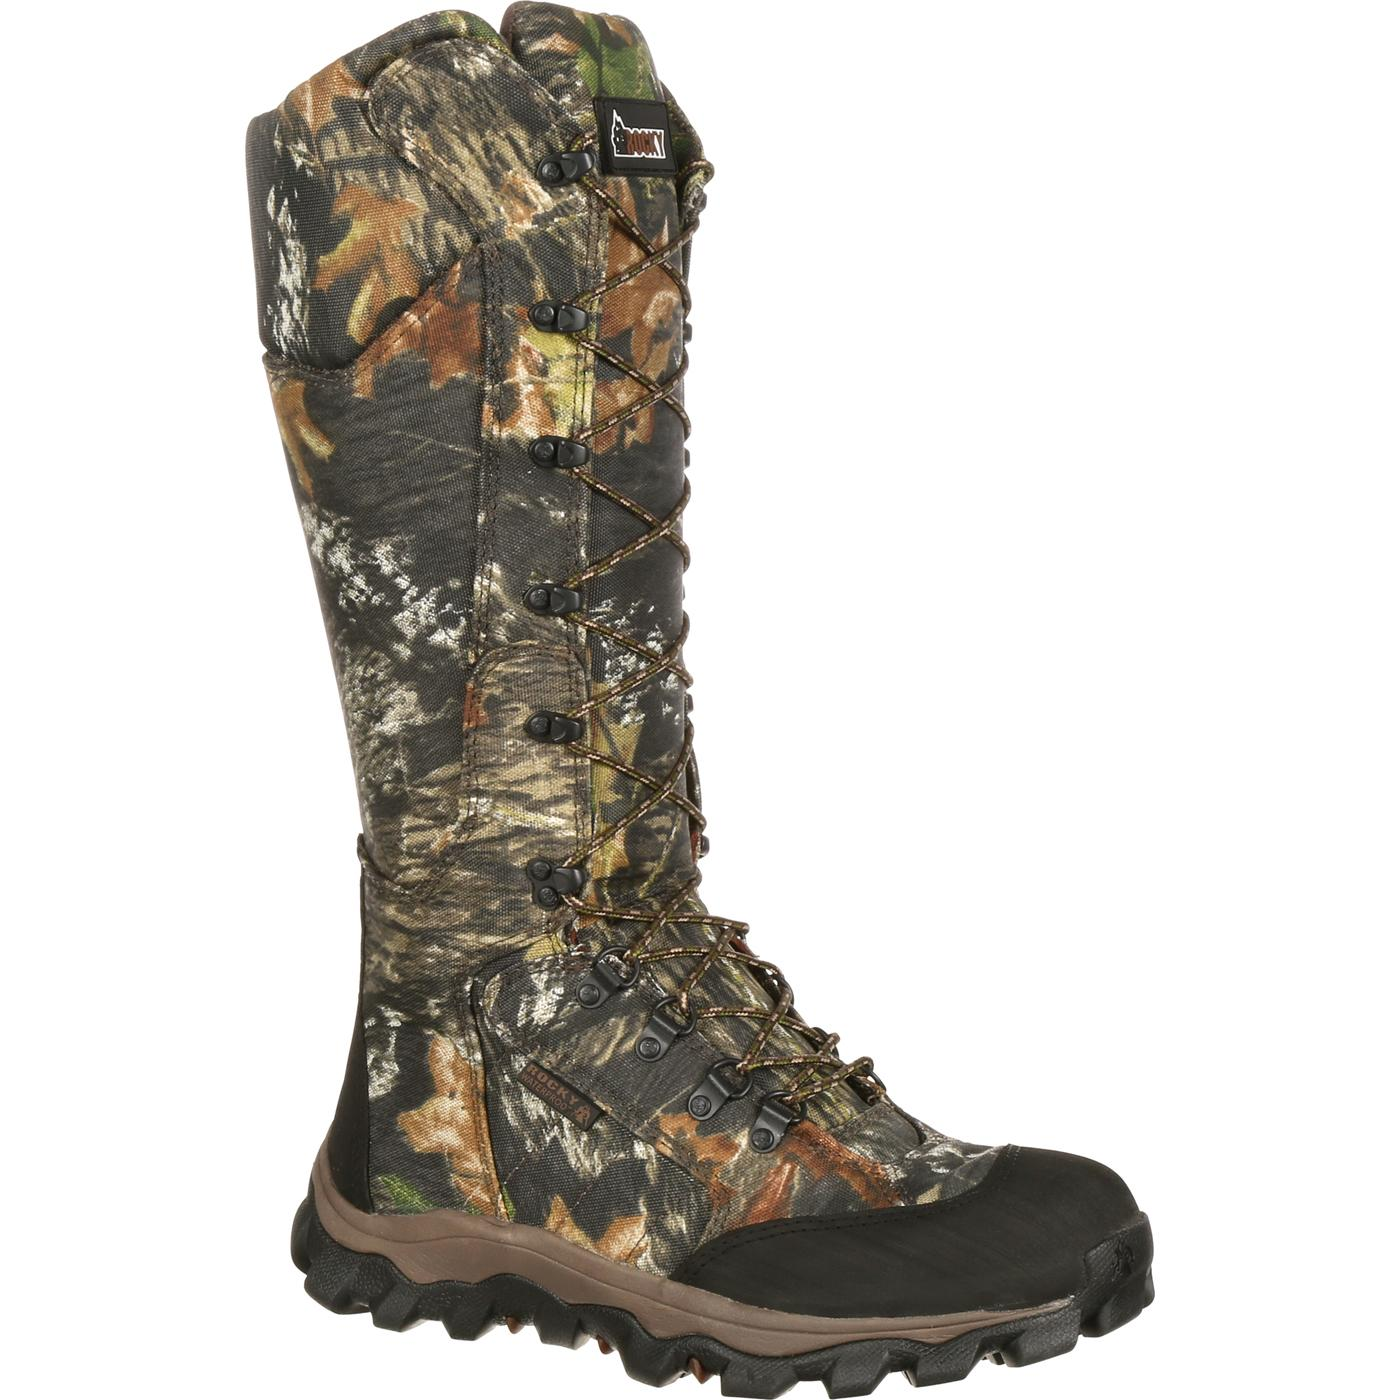 Image result for snake boots